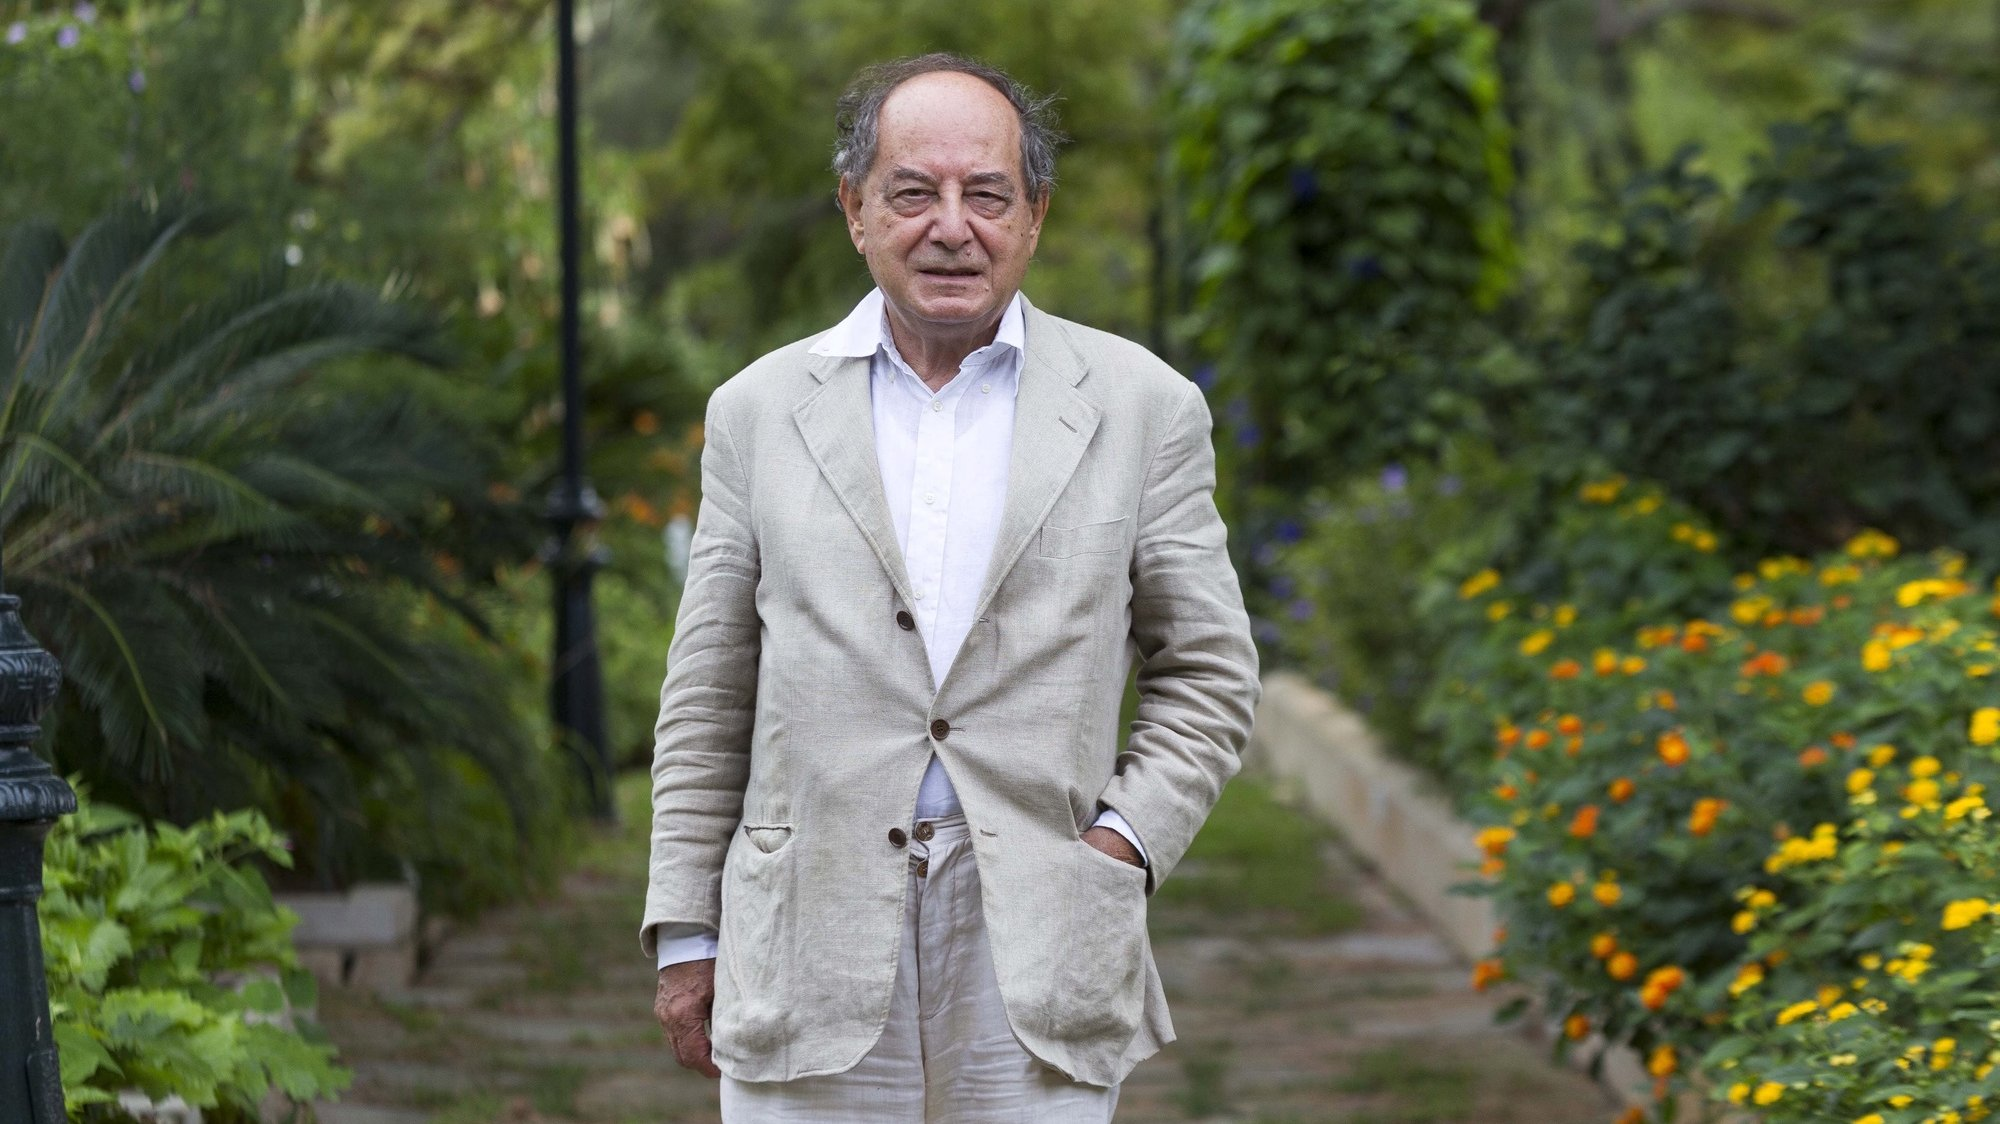 epa05542291 Italian writer and publicher Roberto Calasso poses during an interview with Spanish News Agency EFE at Pollenca in Majorca, Spain, 16 September 2016. Calasso will be awarded later in the day with the 'Formentor de las Letras' Award.  EPA/CATI CLADERA